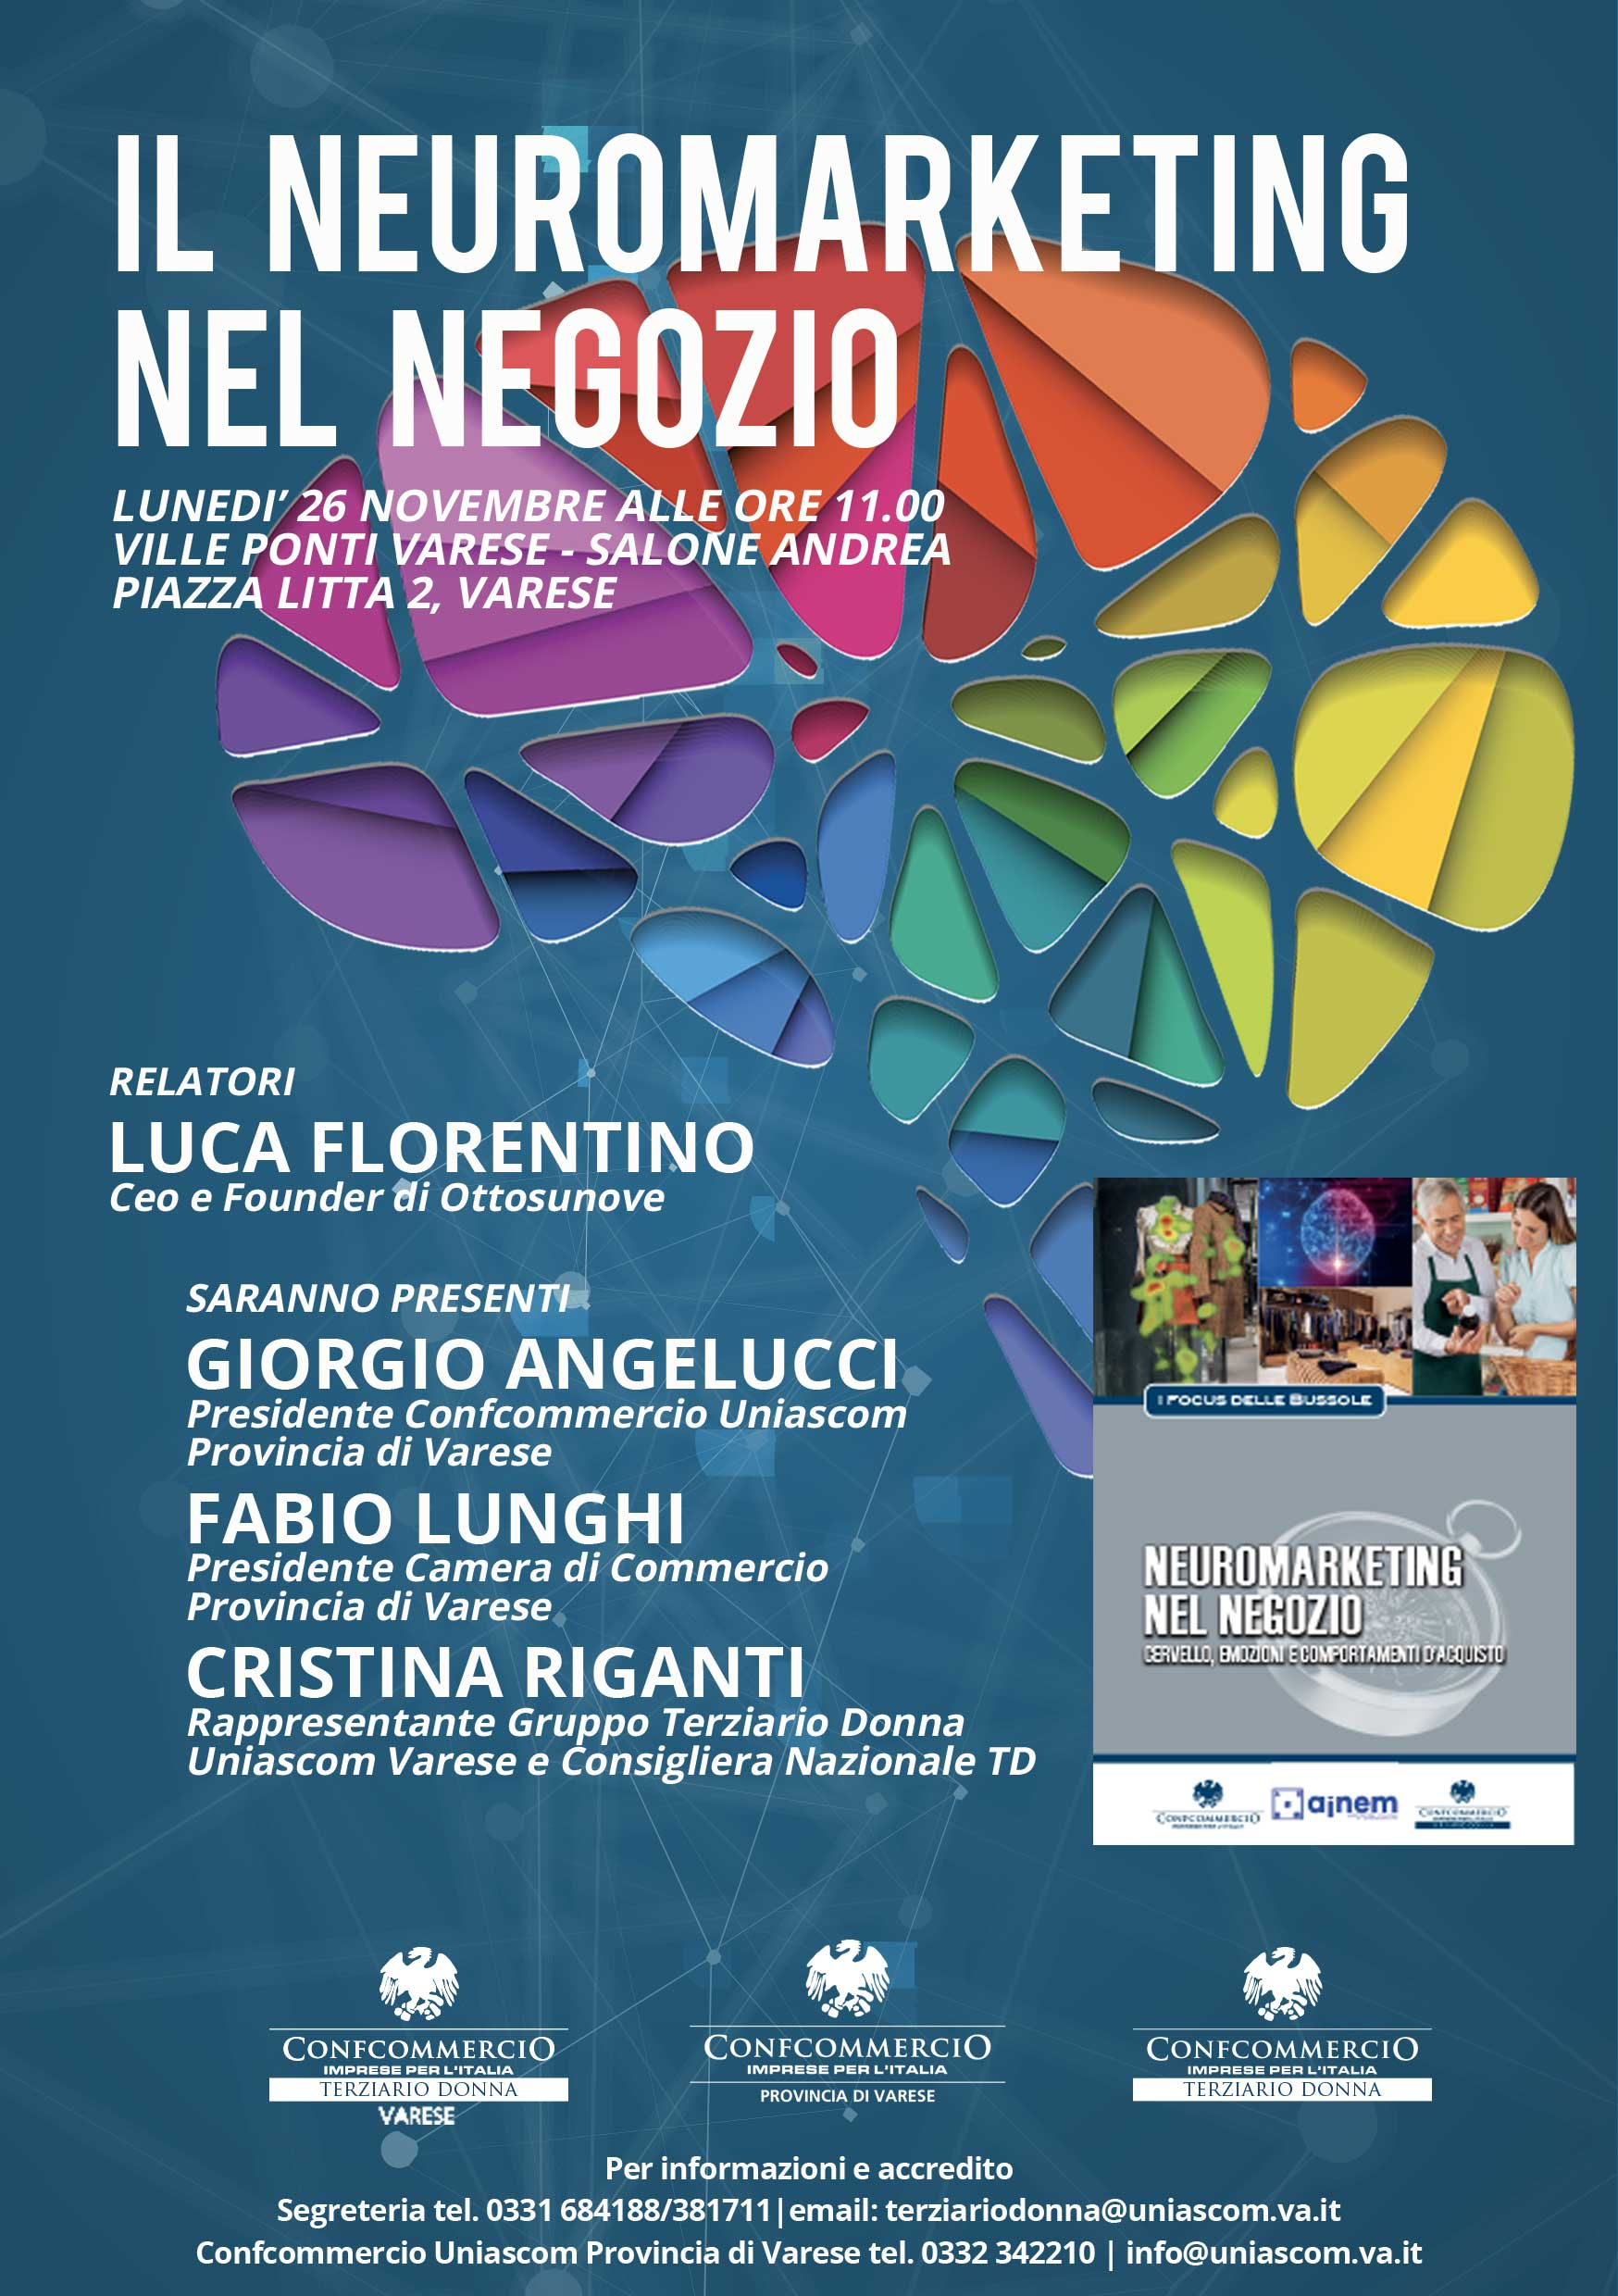 Neuromarketing in negozio